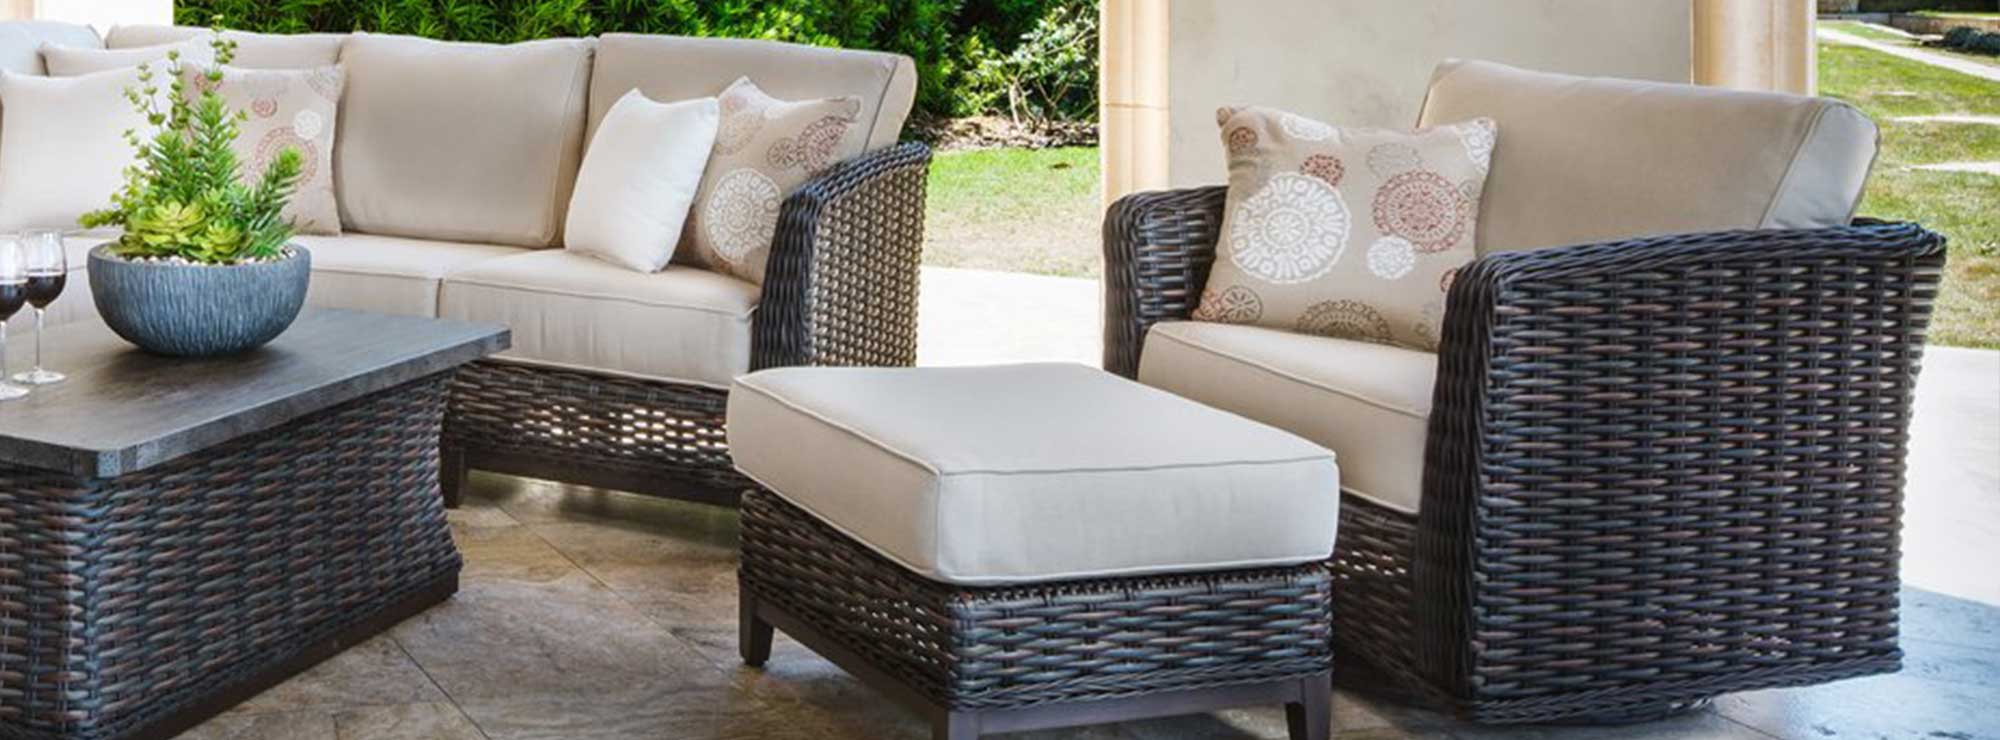 Catalina woven outdoor furniture collection